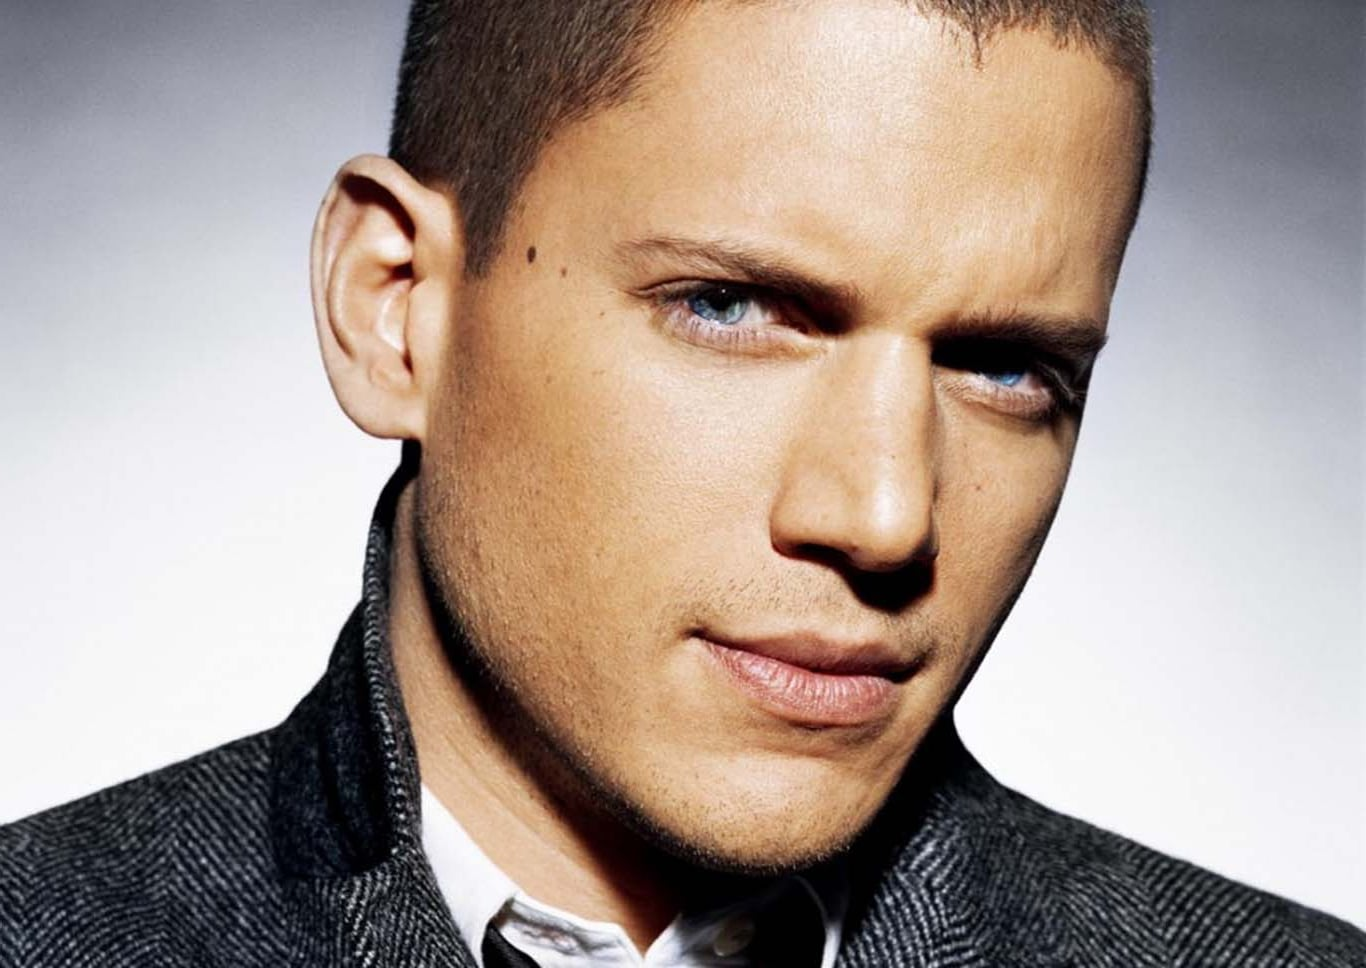 Hd Abstract Wallpapers For Iphone 5 Wentworth Miller Hd Wallpapers Free Download